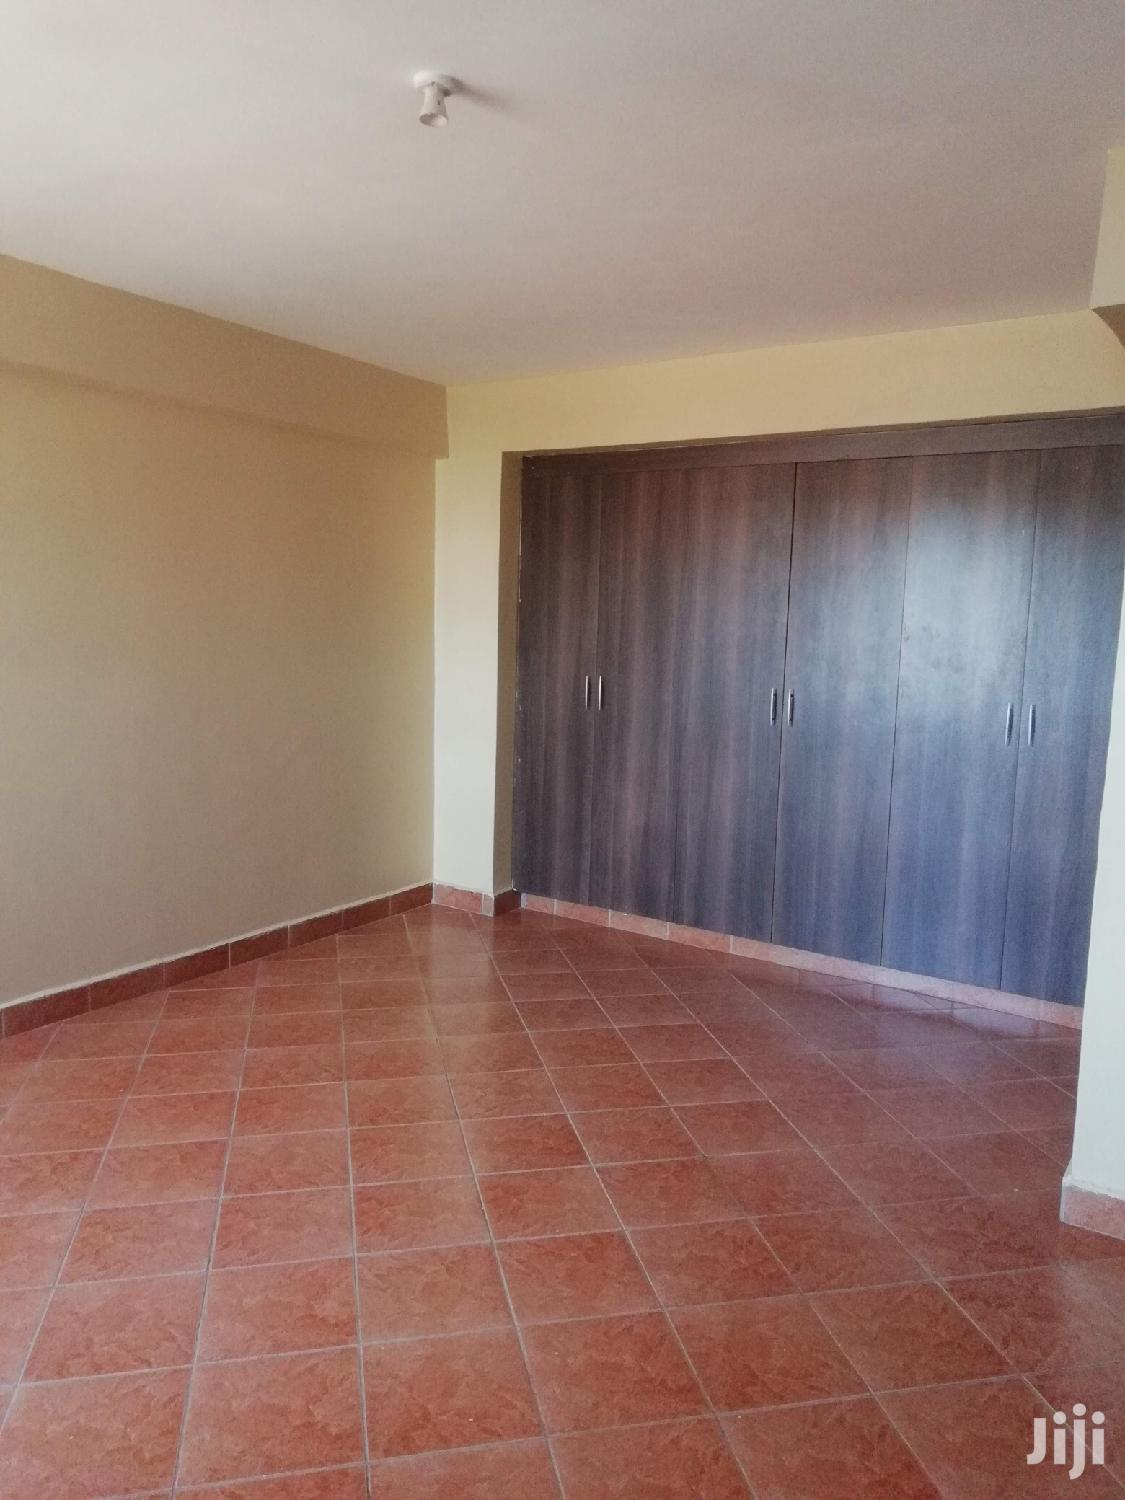 Elegant;2brs Apartment All En-suite And Very Secure